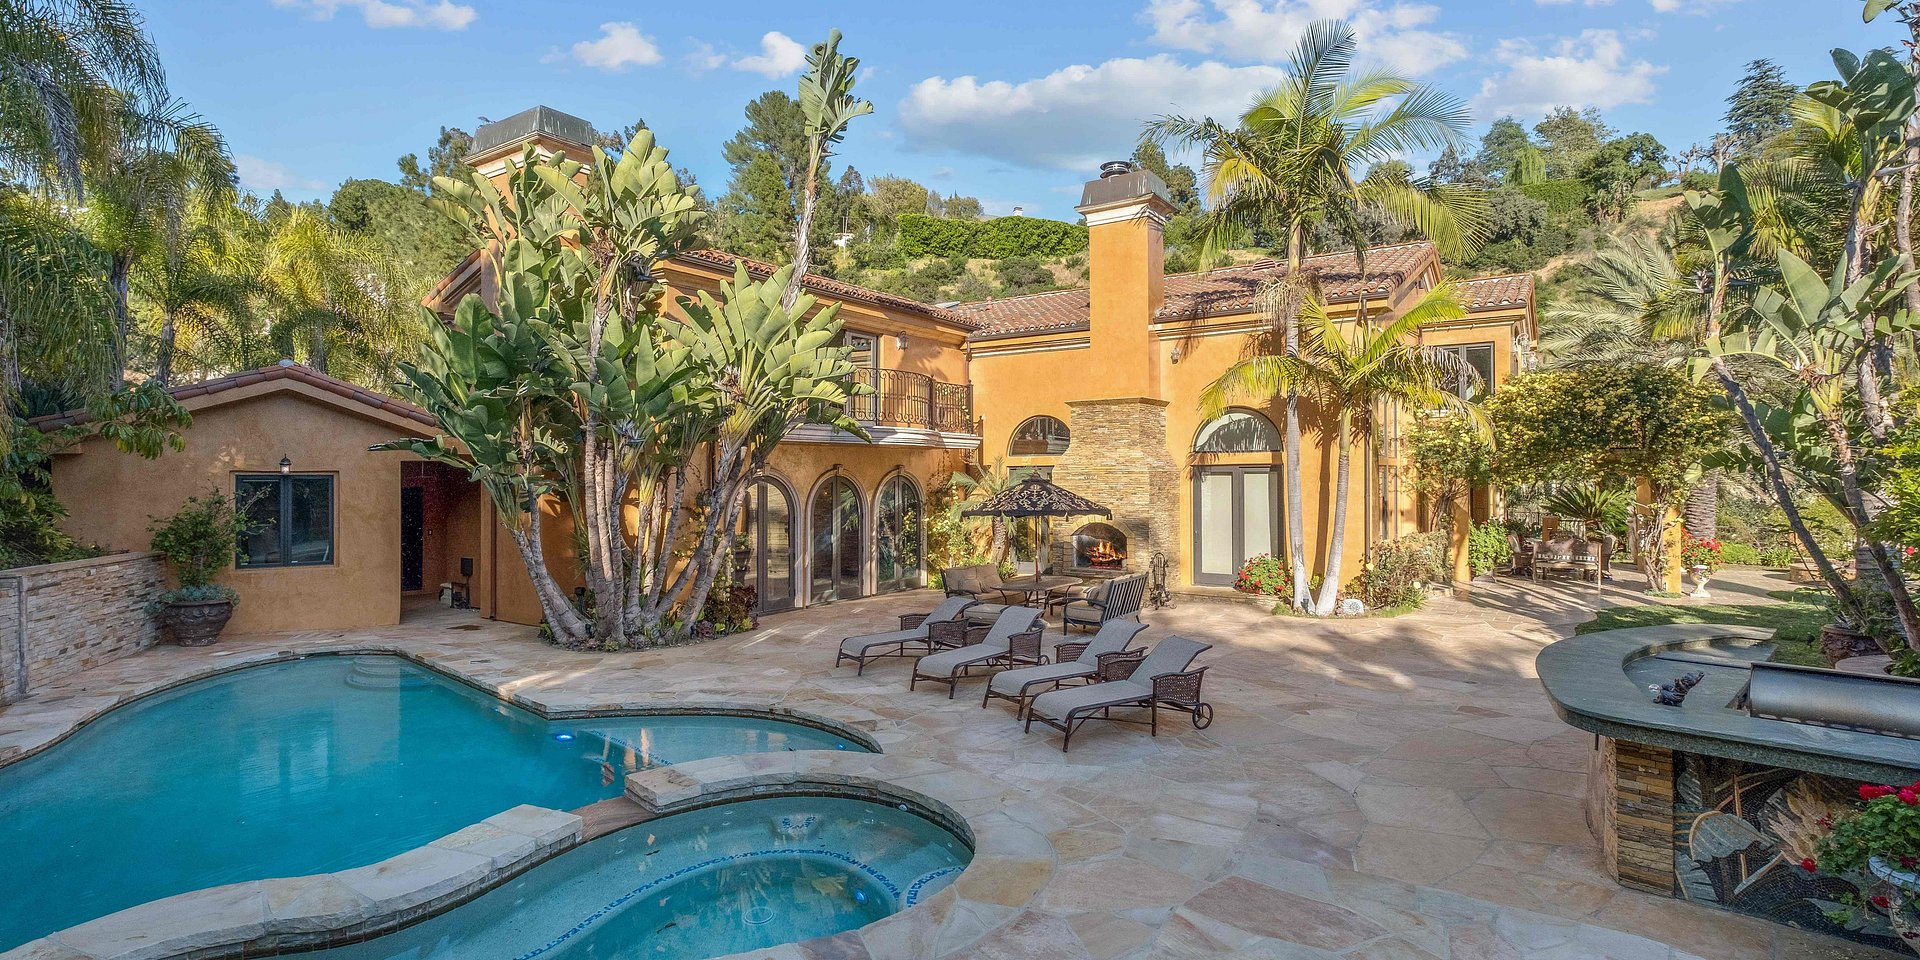 Coldwell Banker Residential Brokerage Lists Los Angeles Property for $10.995 Million